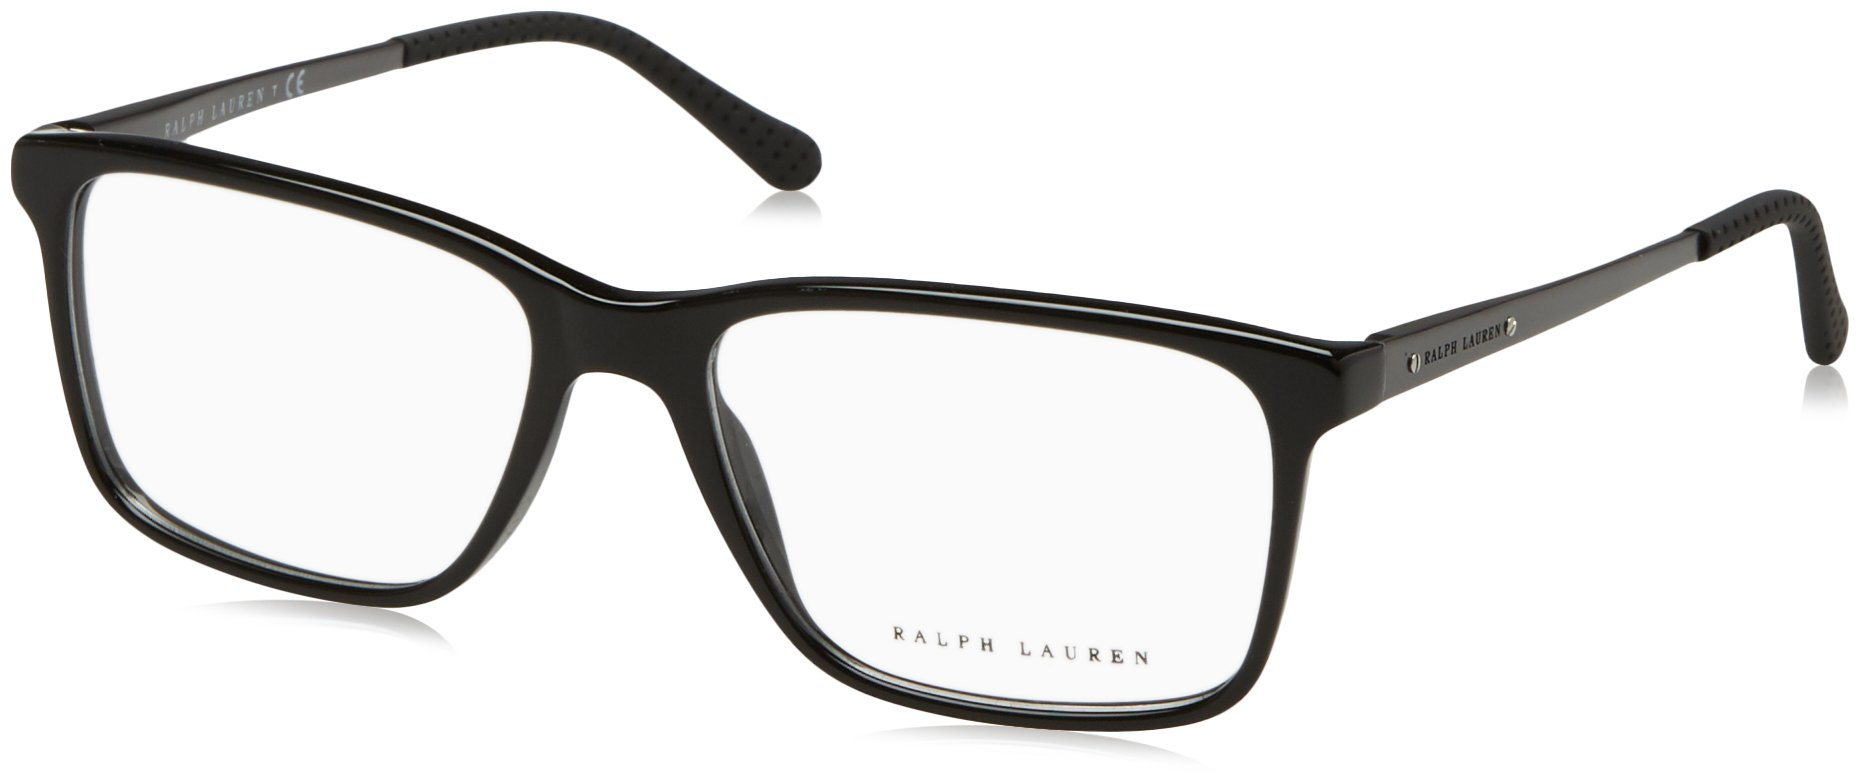 Ralph Lauren RL6133 Eyeglass Frames 5001-56 - Black RL6133-5001-56 by RALPH LAUREN